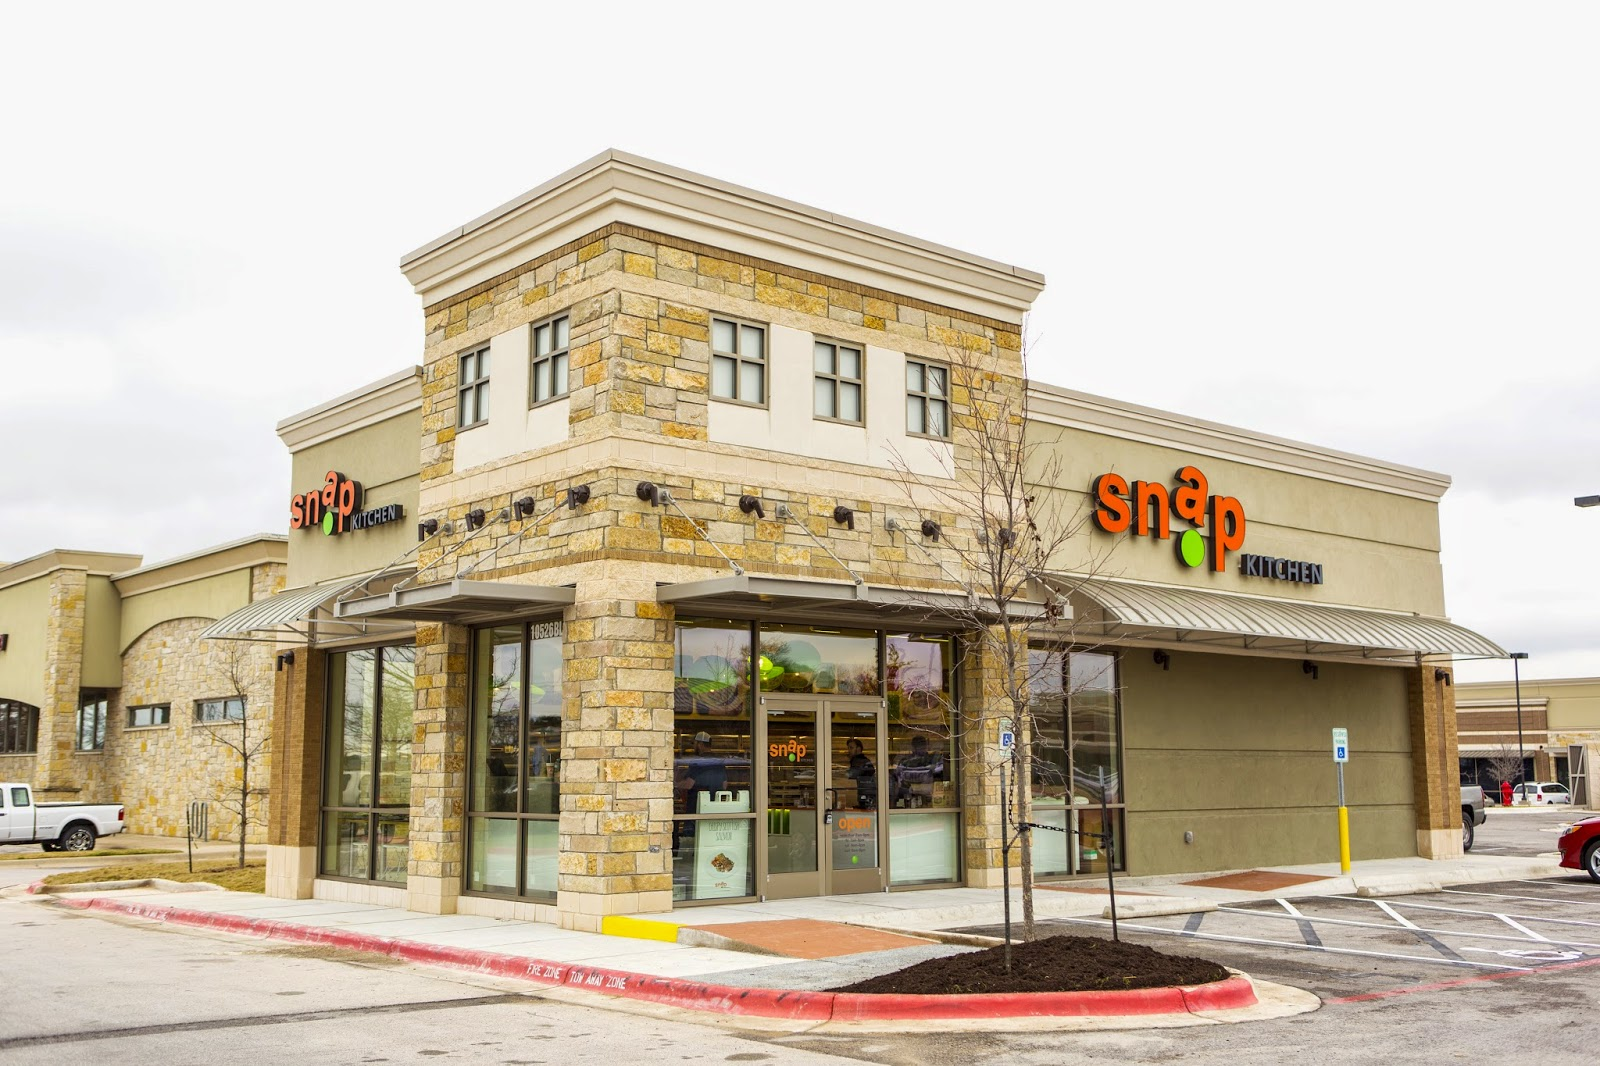 Snap Kitchens Newest Location  Avery Ranch  Jesse Coulter